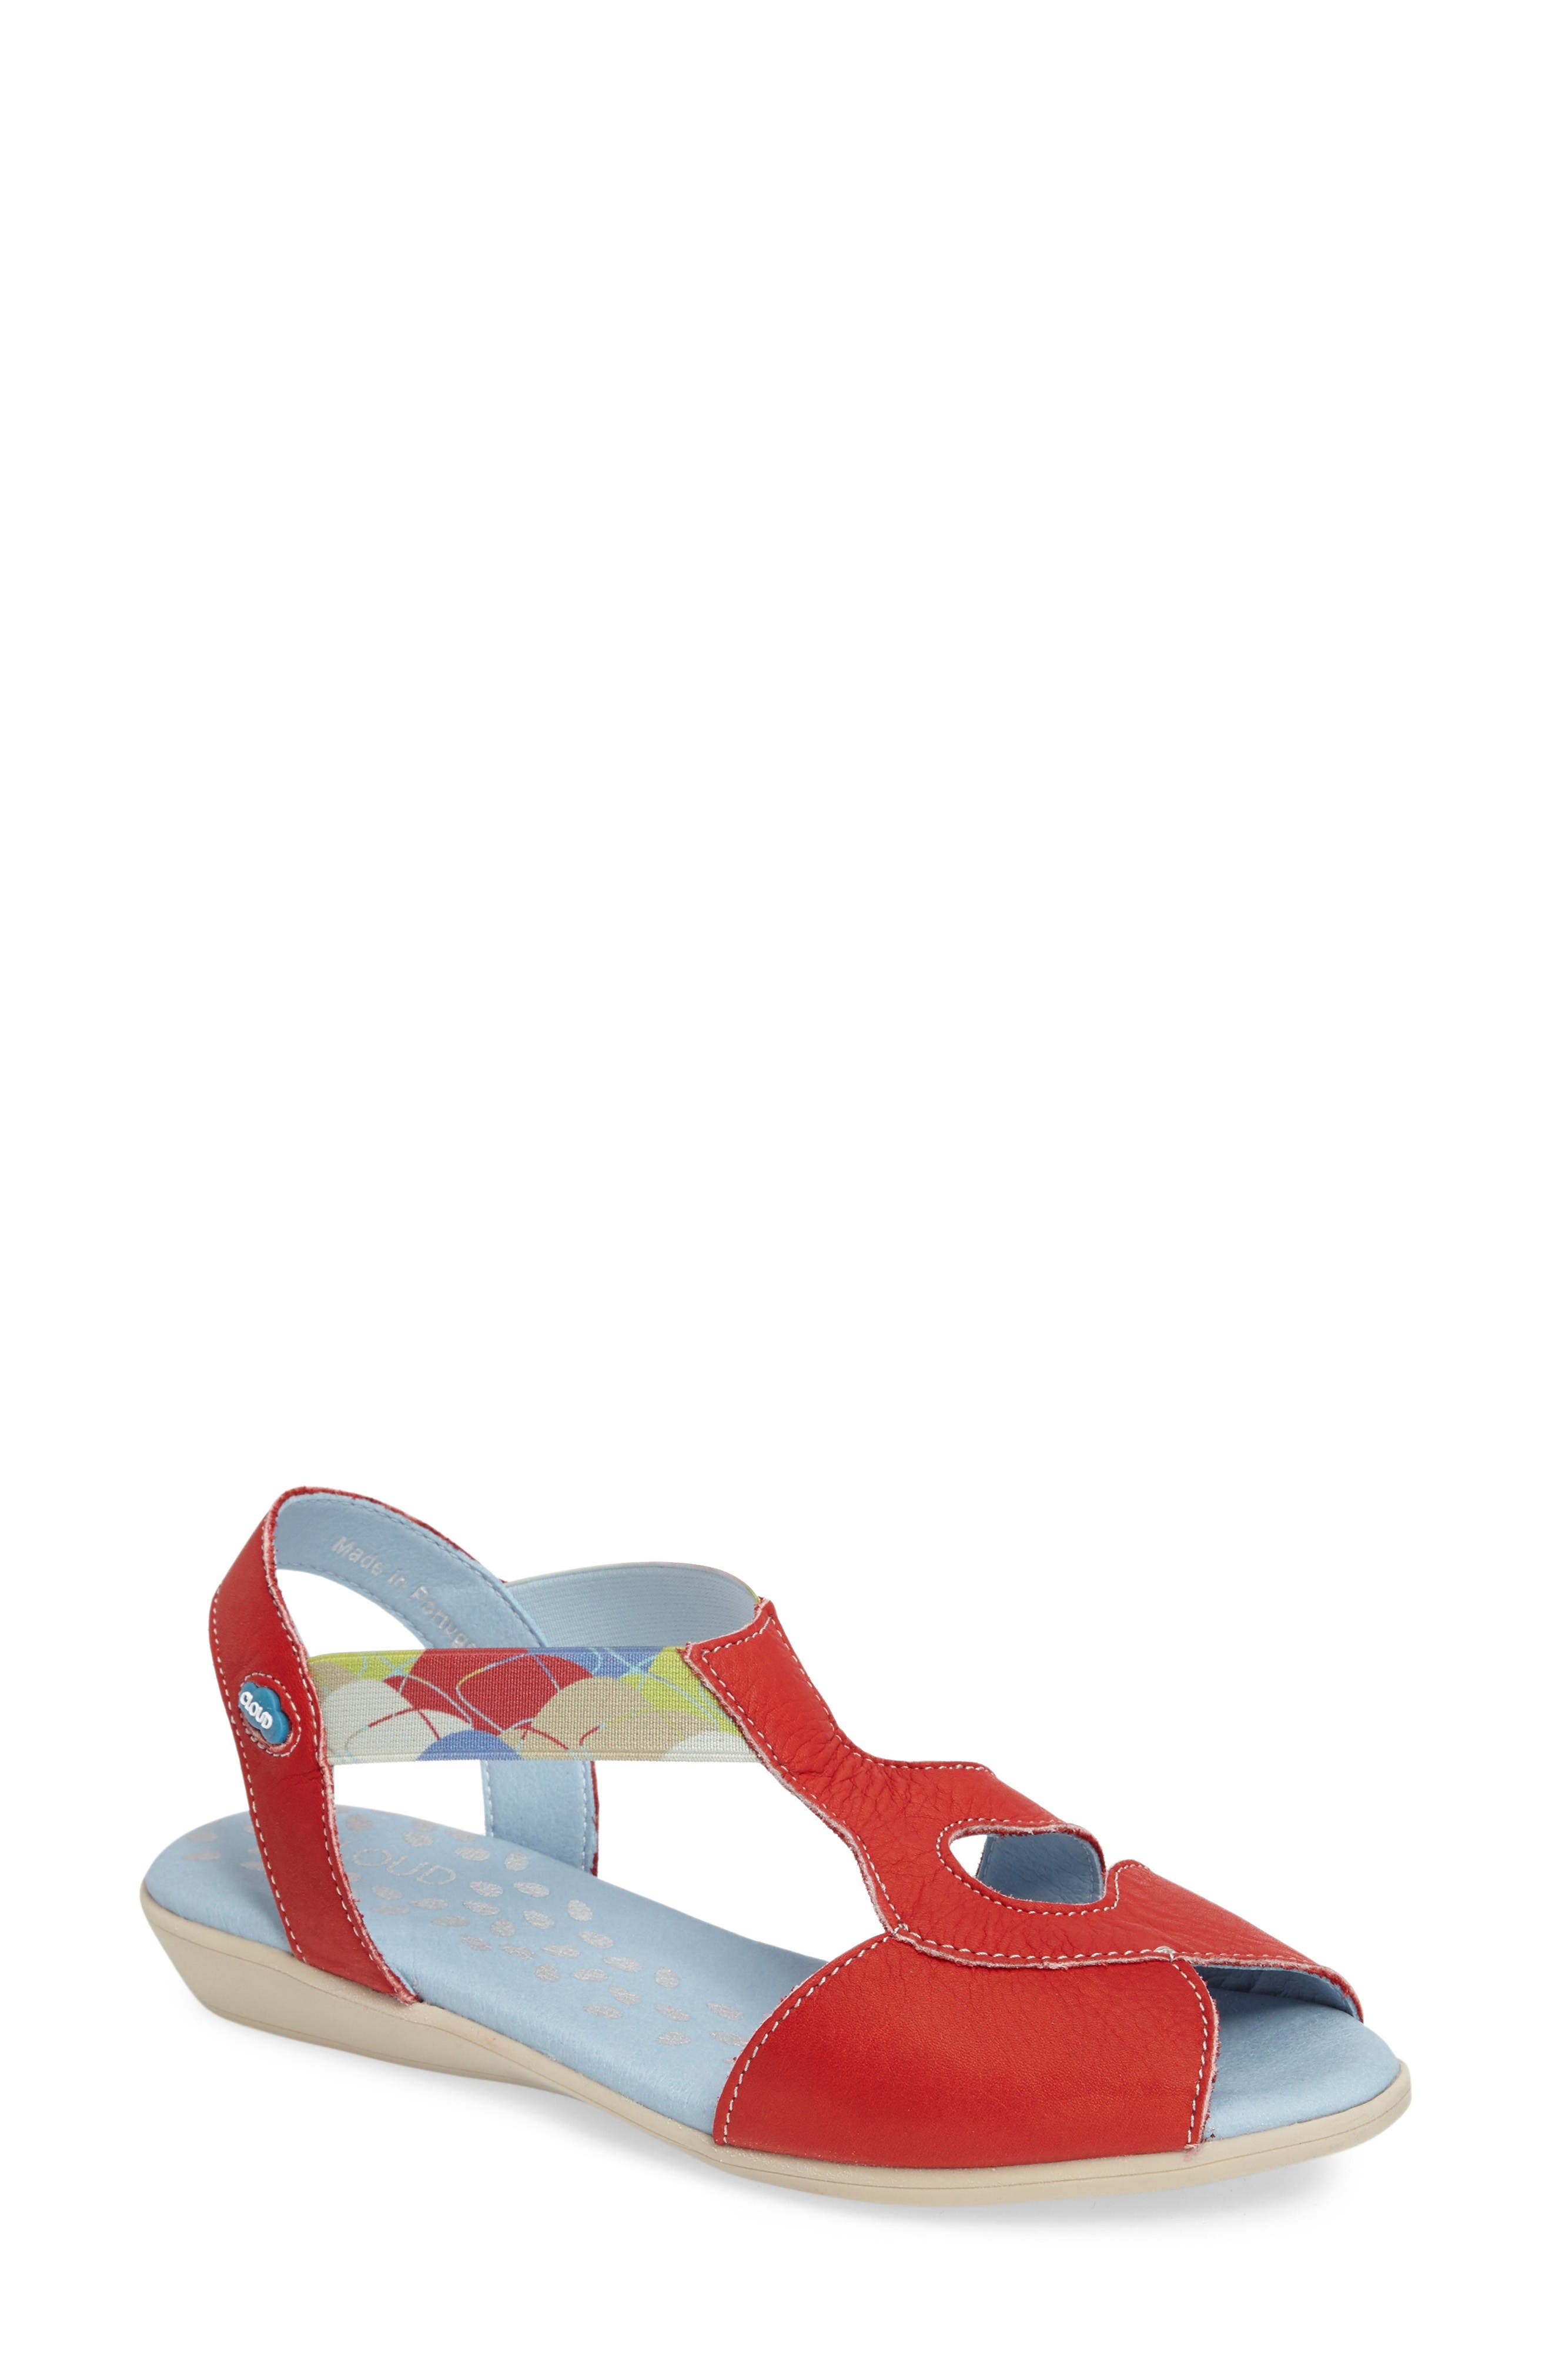 Chaya Sandal,                             Main thumbnail 1, color,                             Red Leather